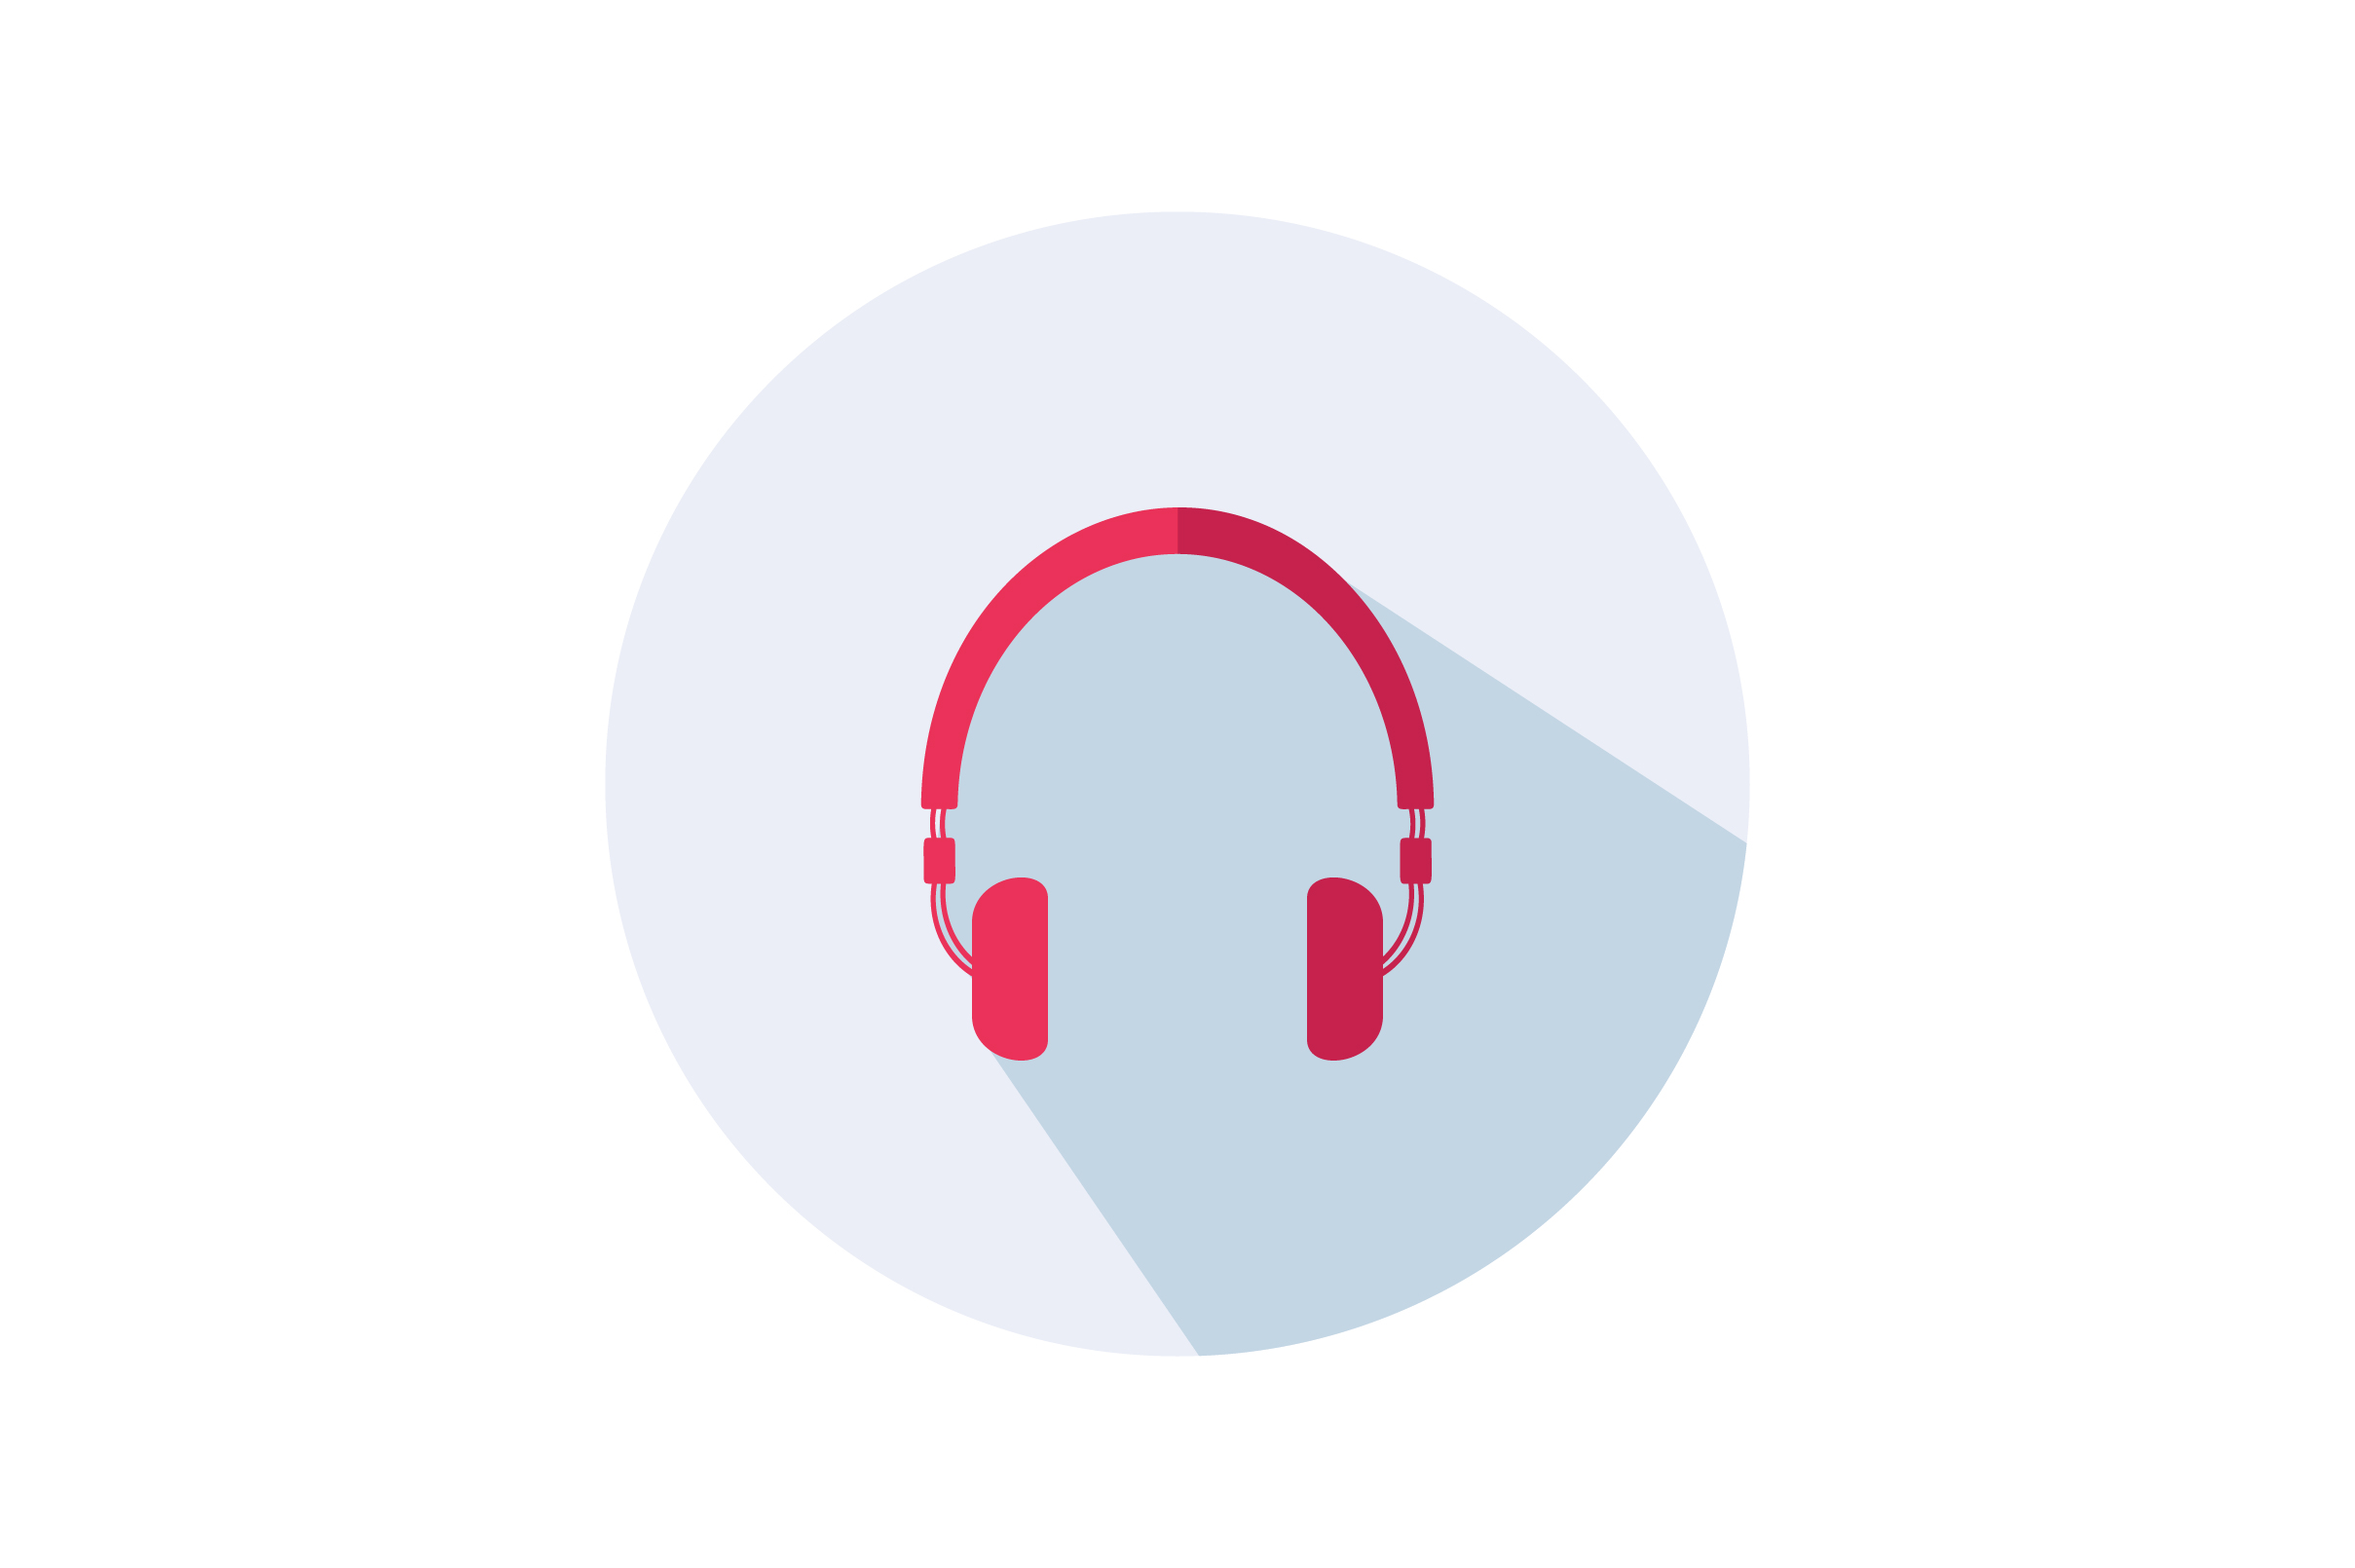 Headphone Glyph Icon Vector Graphic By Riduwan Molla Creative